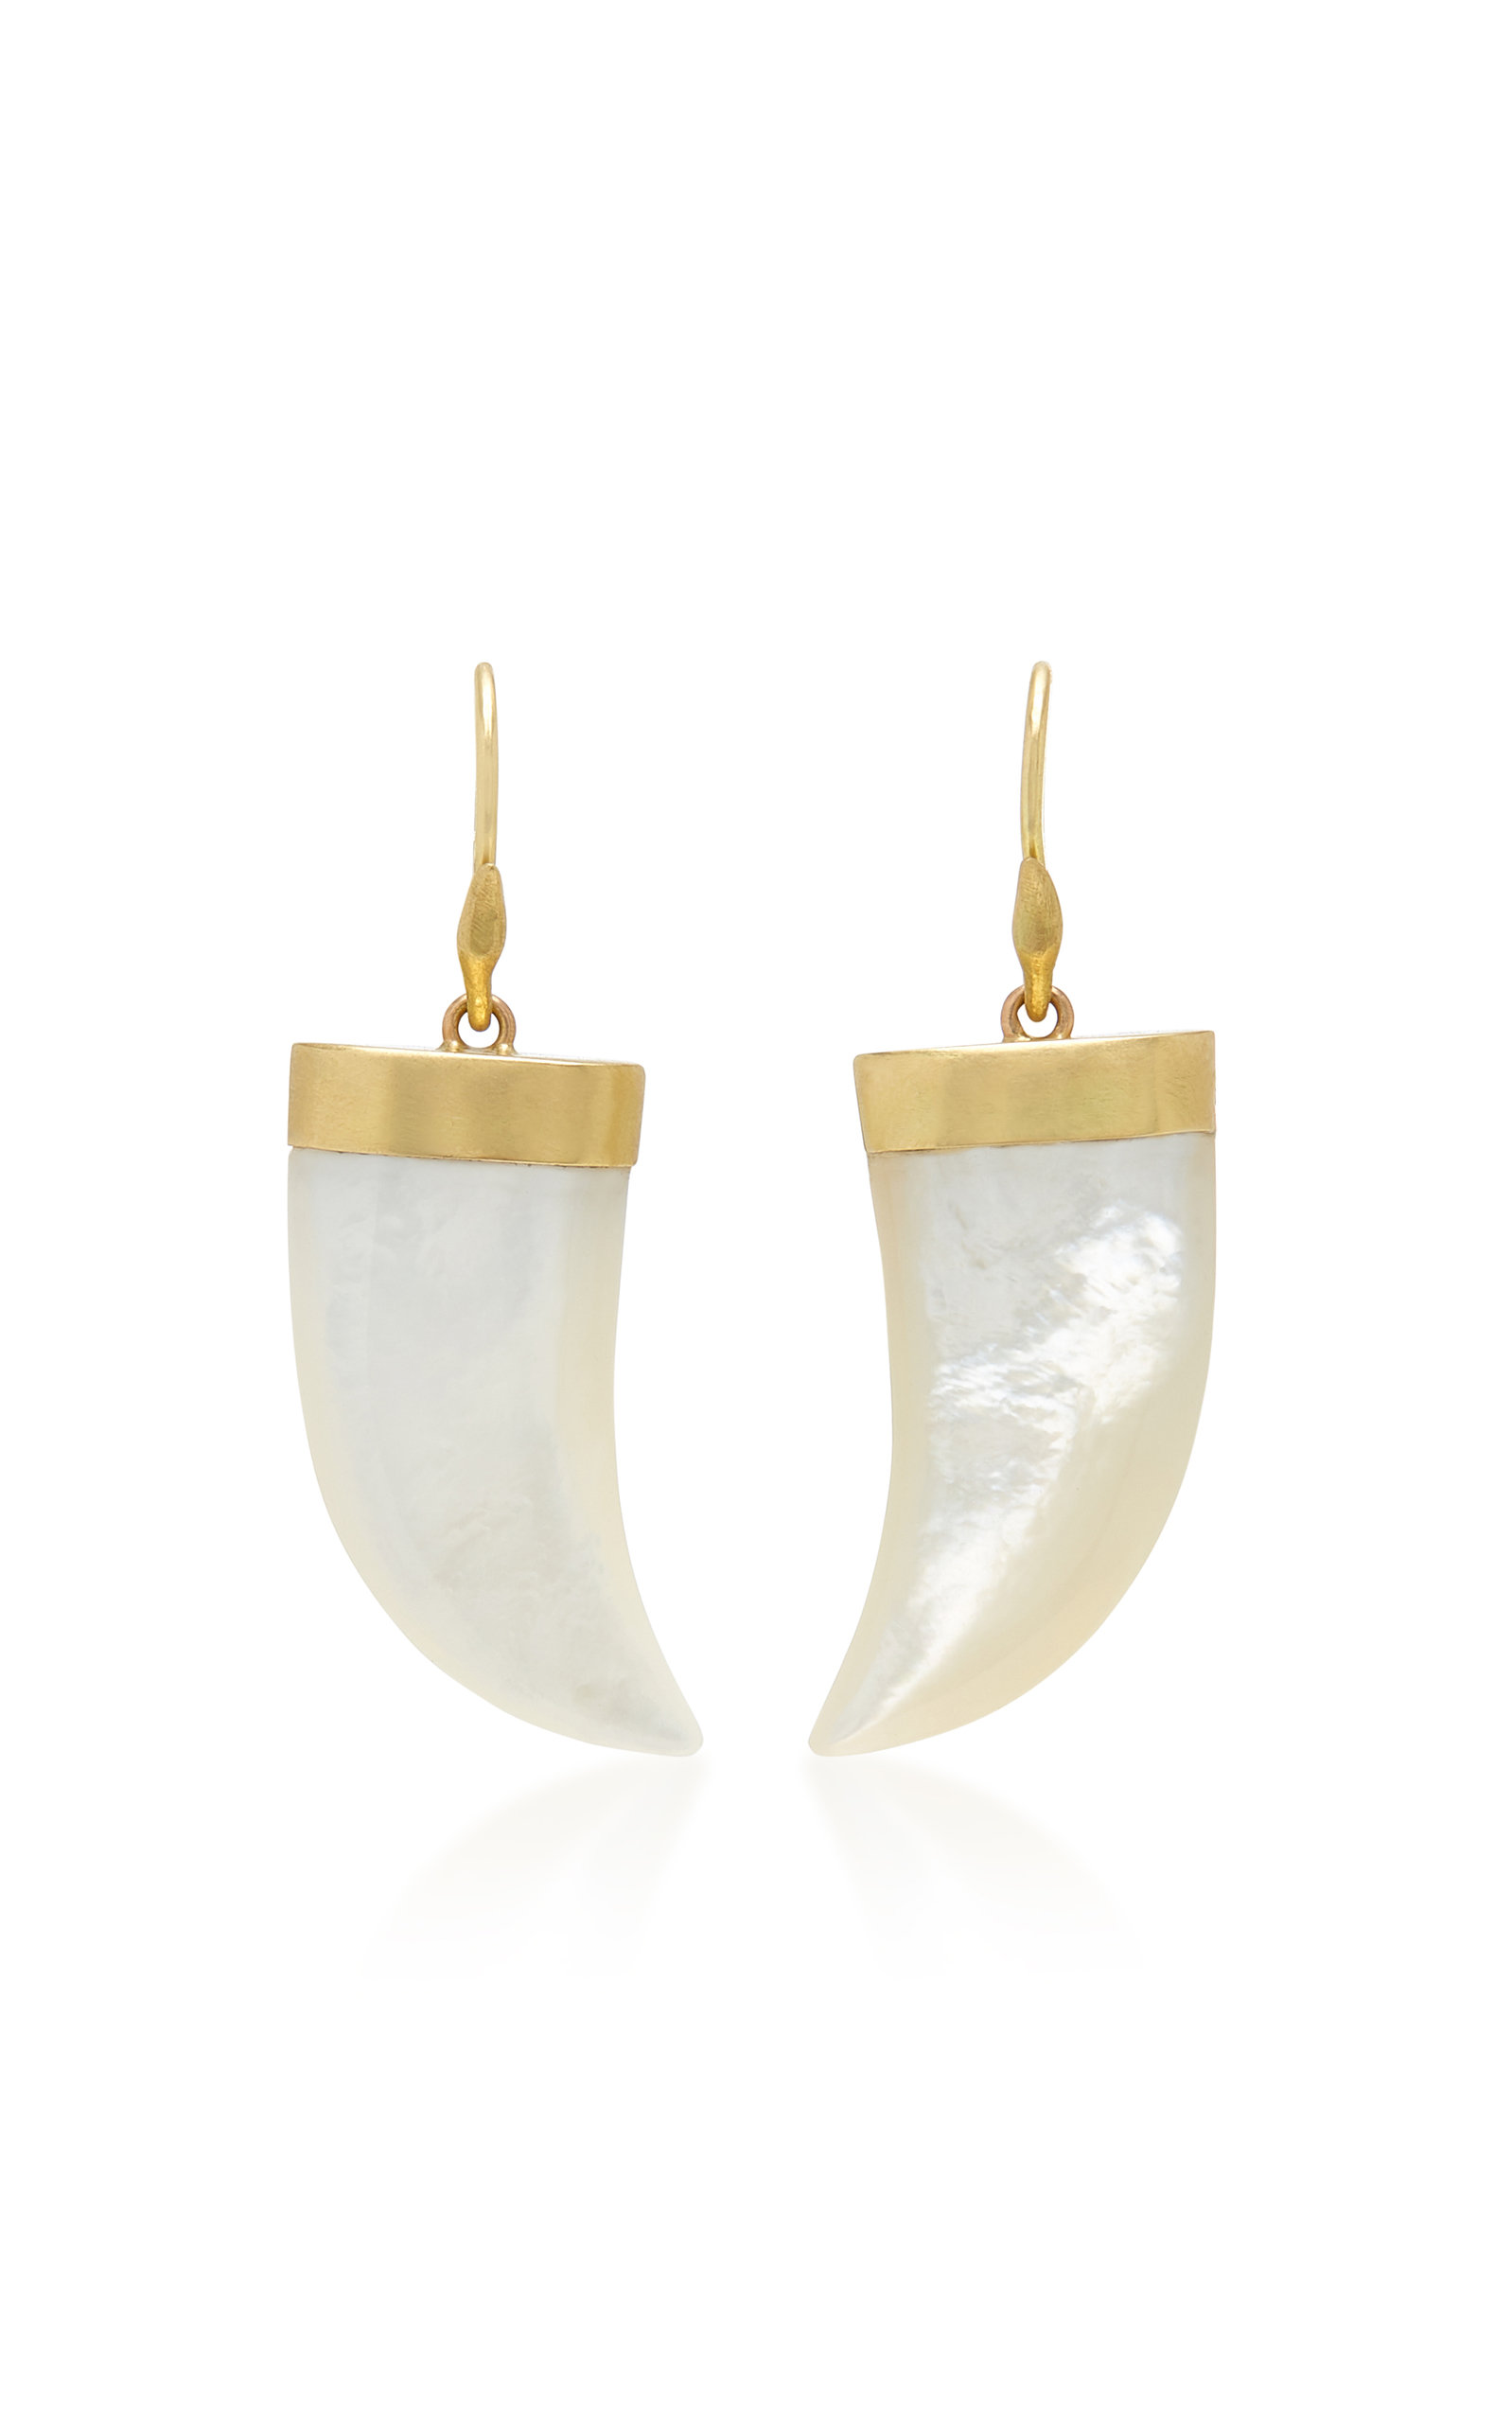 ANNETTE FERDINANDSEN M'O Exclusive Tiger Claw Mother Of Pearl Earring in White